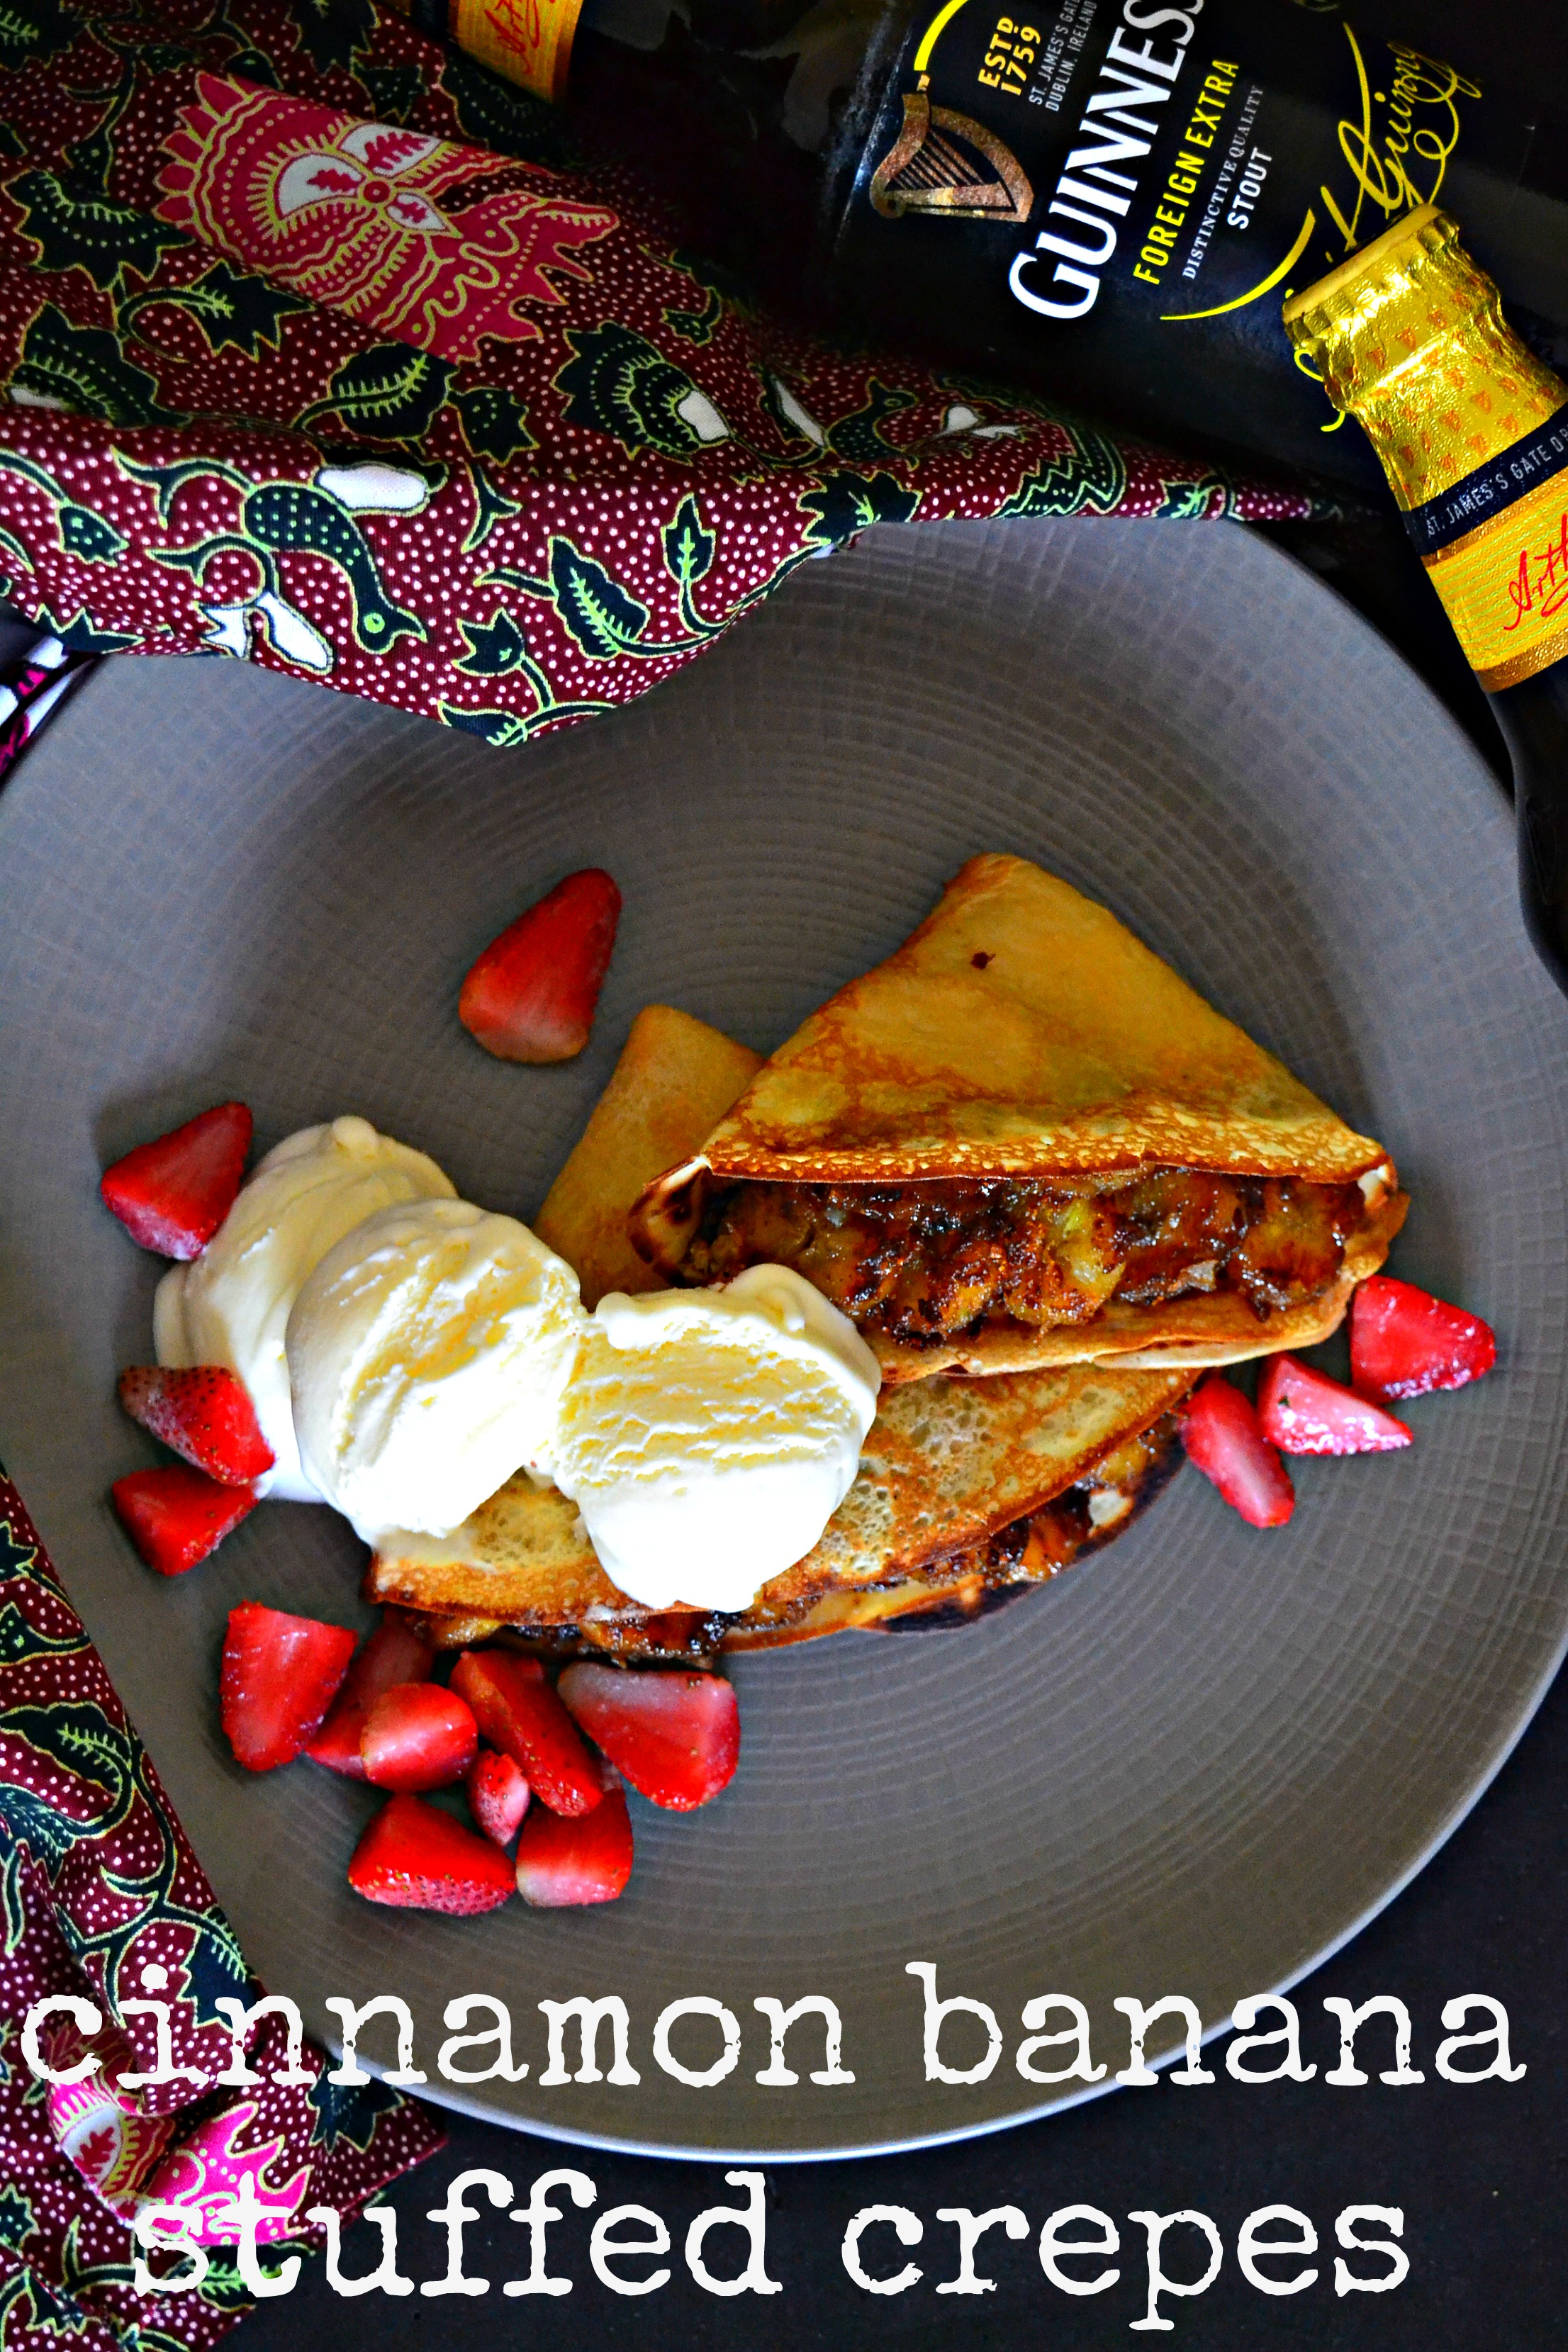 caramelized-cinnamon-banana-stuffed-crepes_stuffed-crepe-recipes_how-to-make-crepes_kaluhiskitchen-com